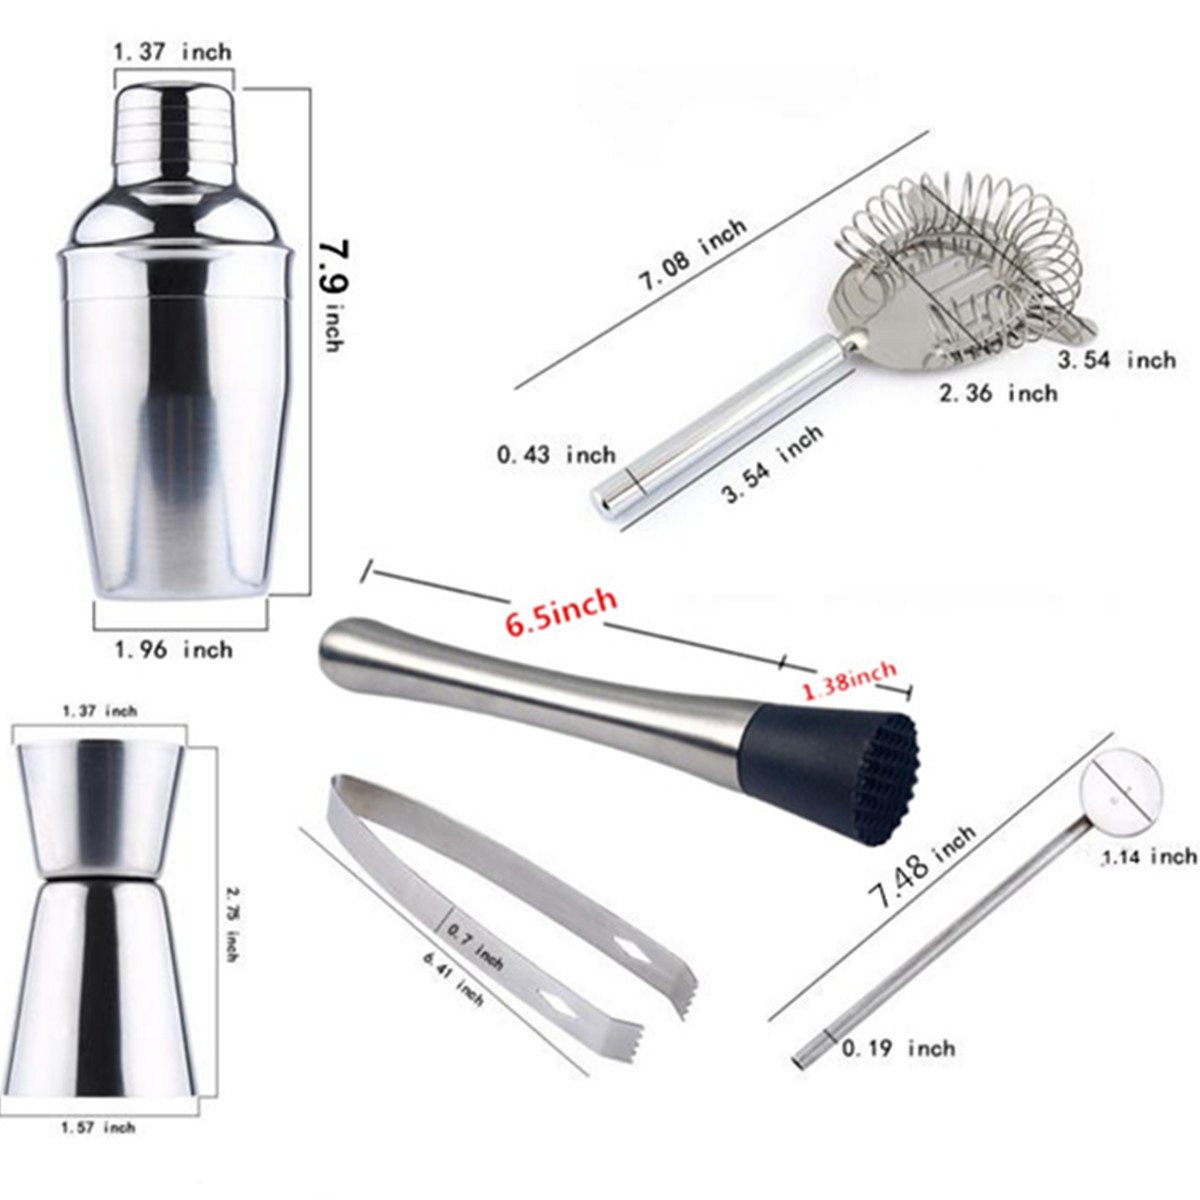 Cocktail Maker Set 10 Pce Home Cocktail Making Kit with Manhattan Cocktail Shaker Bar Measures, Twisted Bar Spoon, Muddler, Mixer, Bottle Pourer, Ice Strainer & Ice Tongs